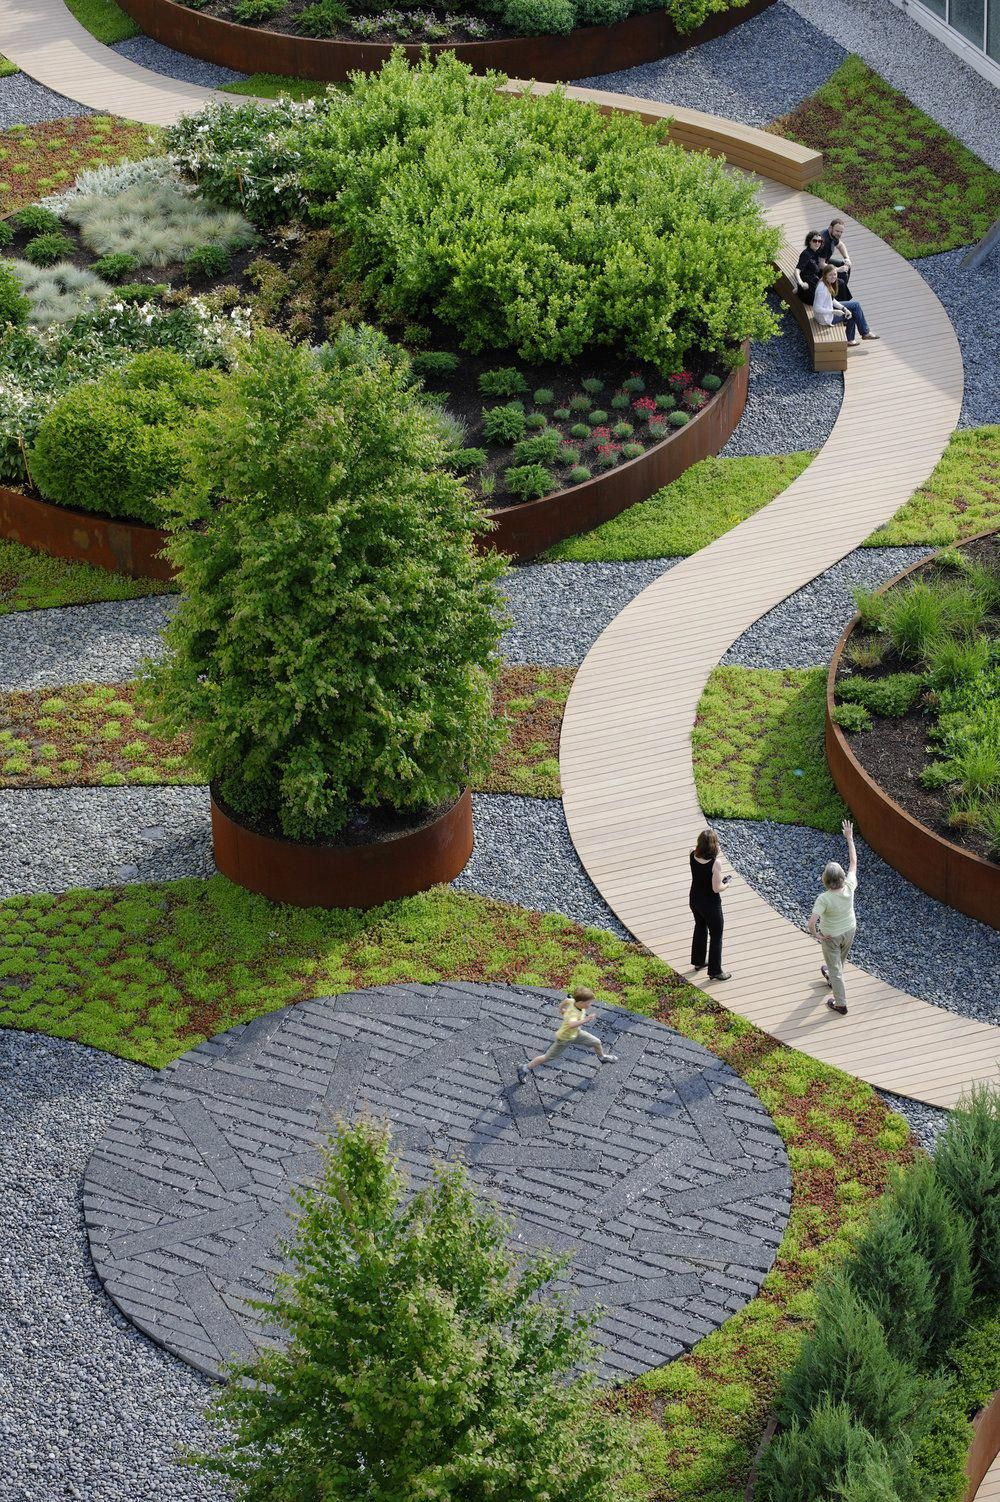 Rock Solid Advice On How To Spruce Up Your Landscaping 조경설계 조경 뒤뜰 조경